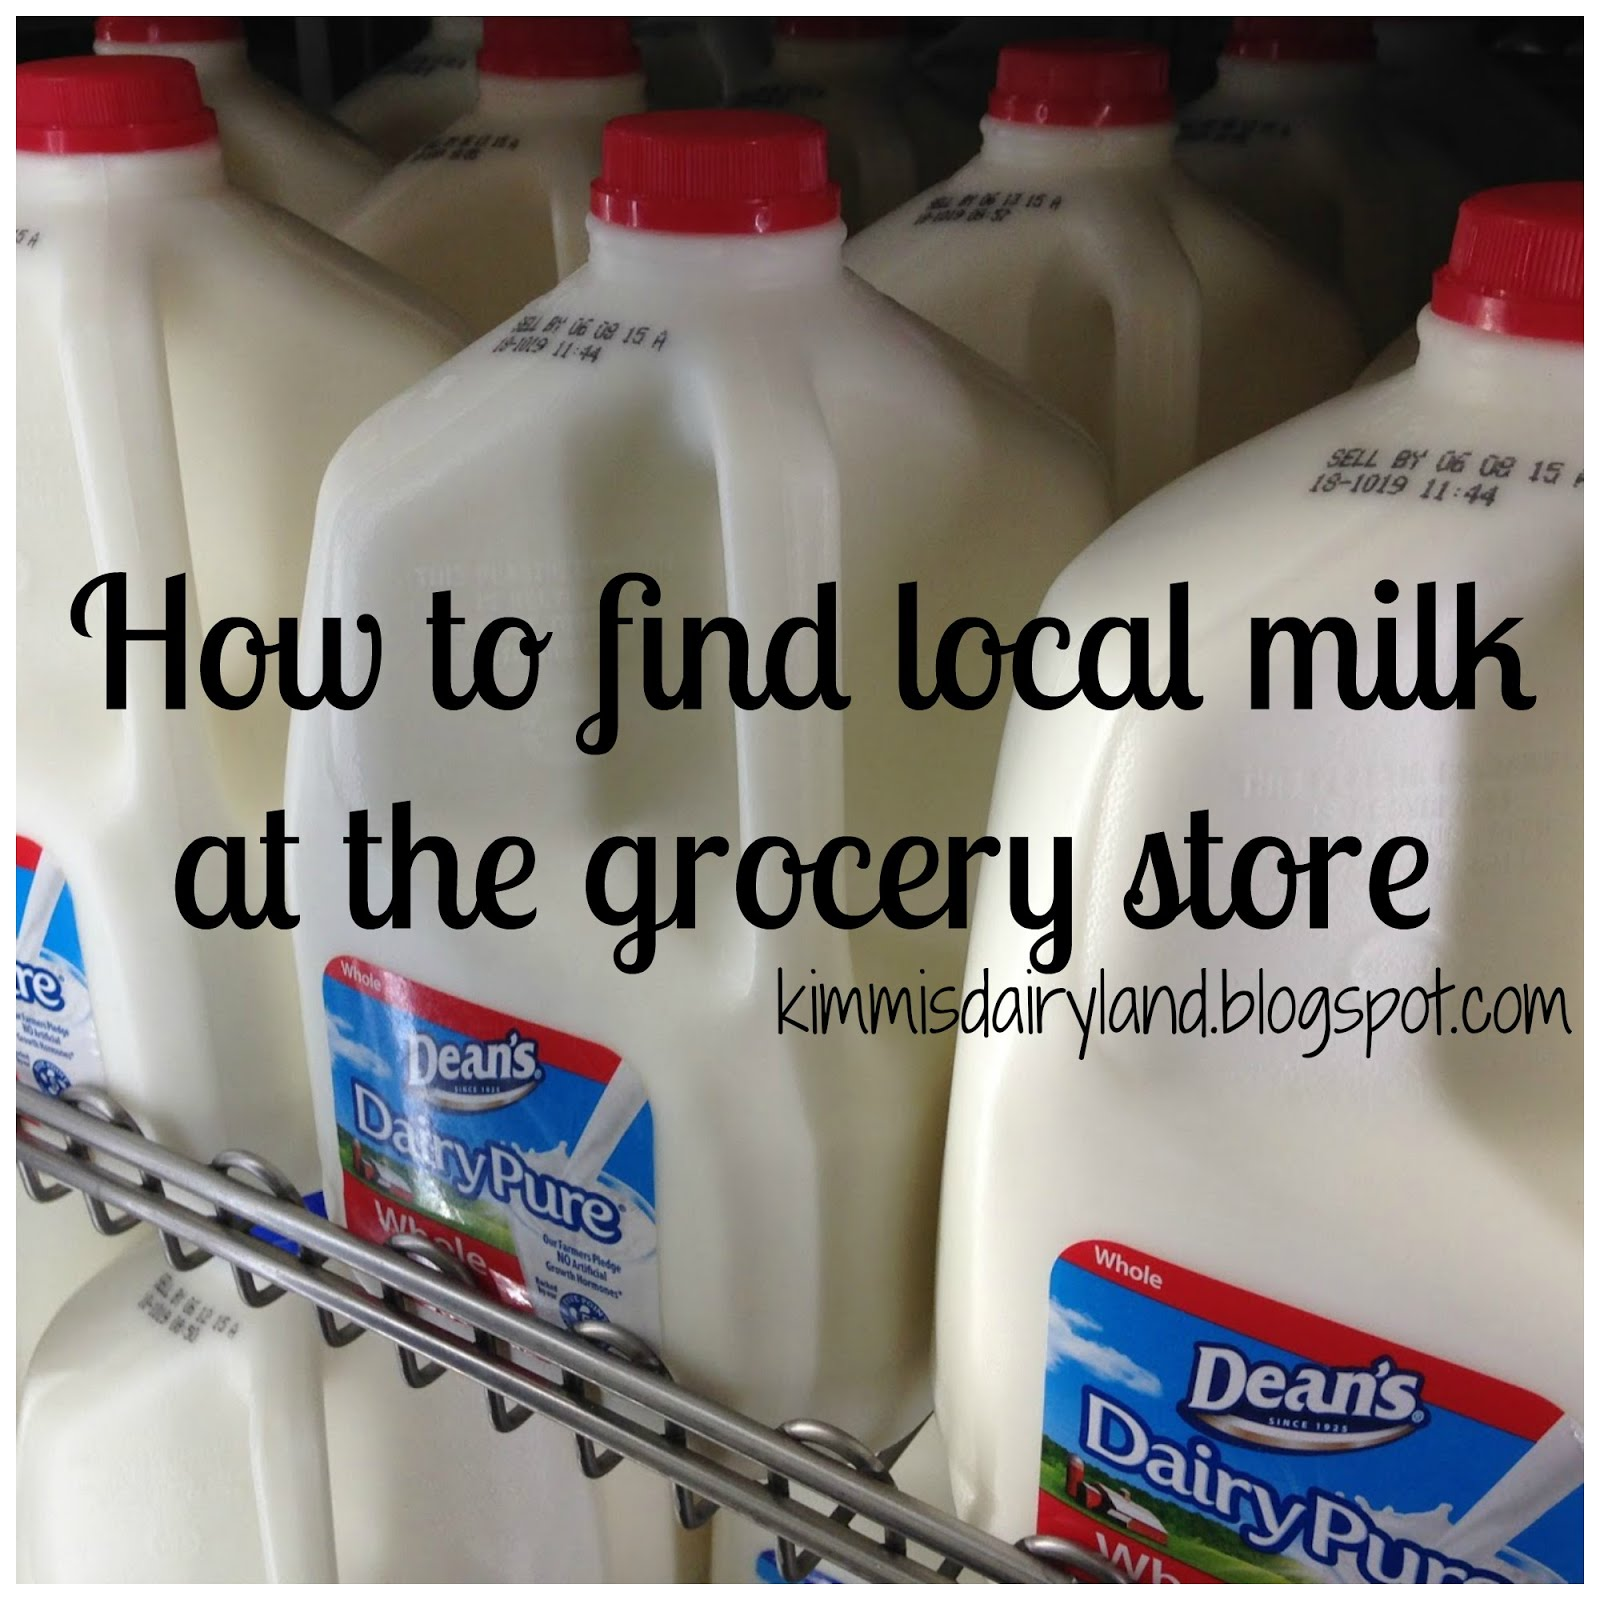 How do I know if my milk is local?